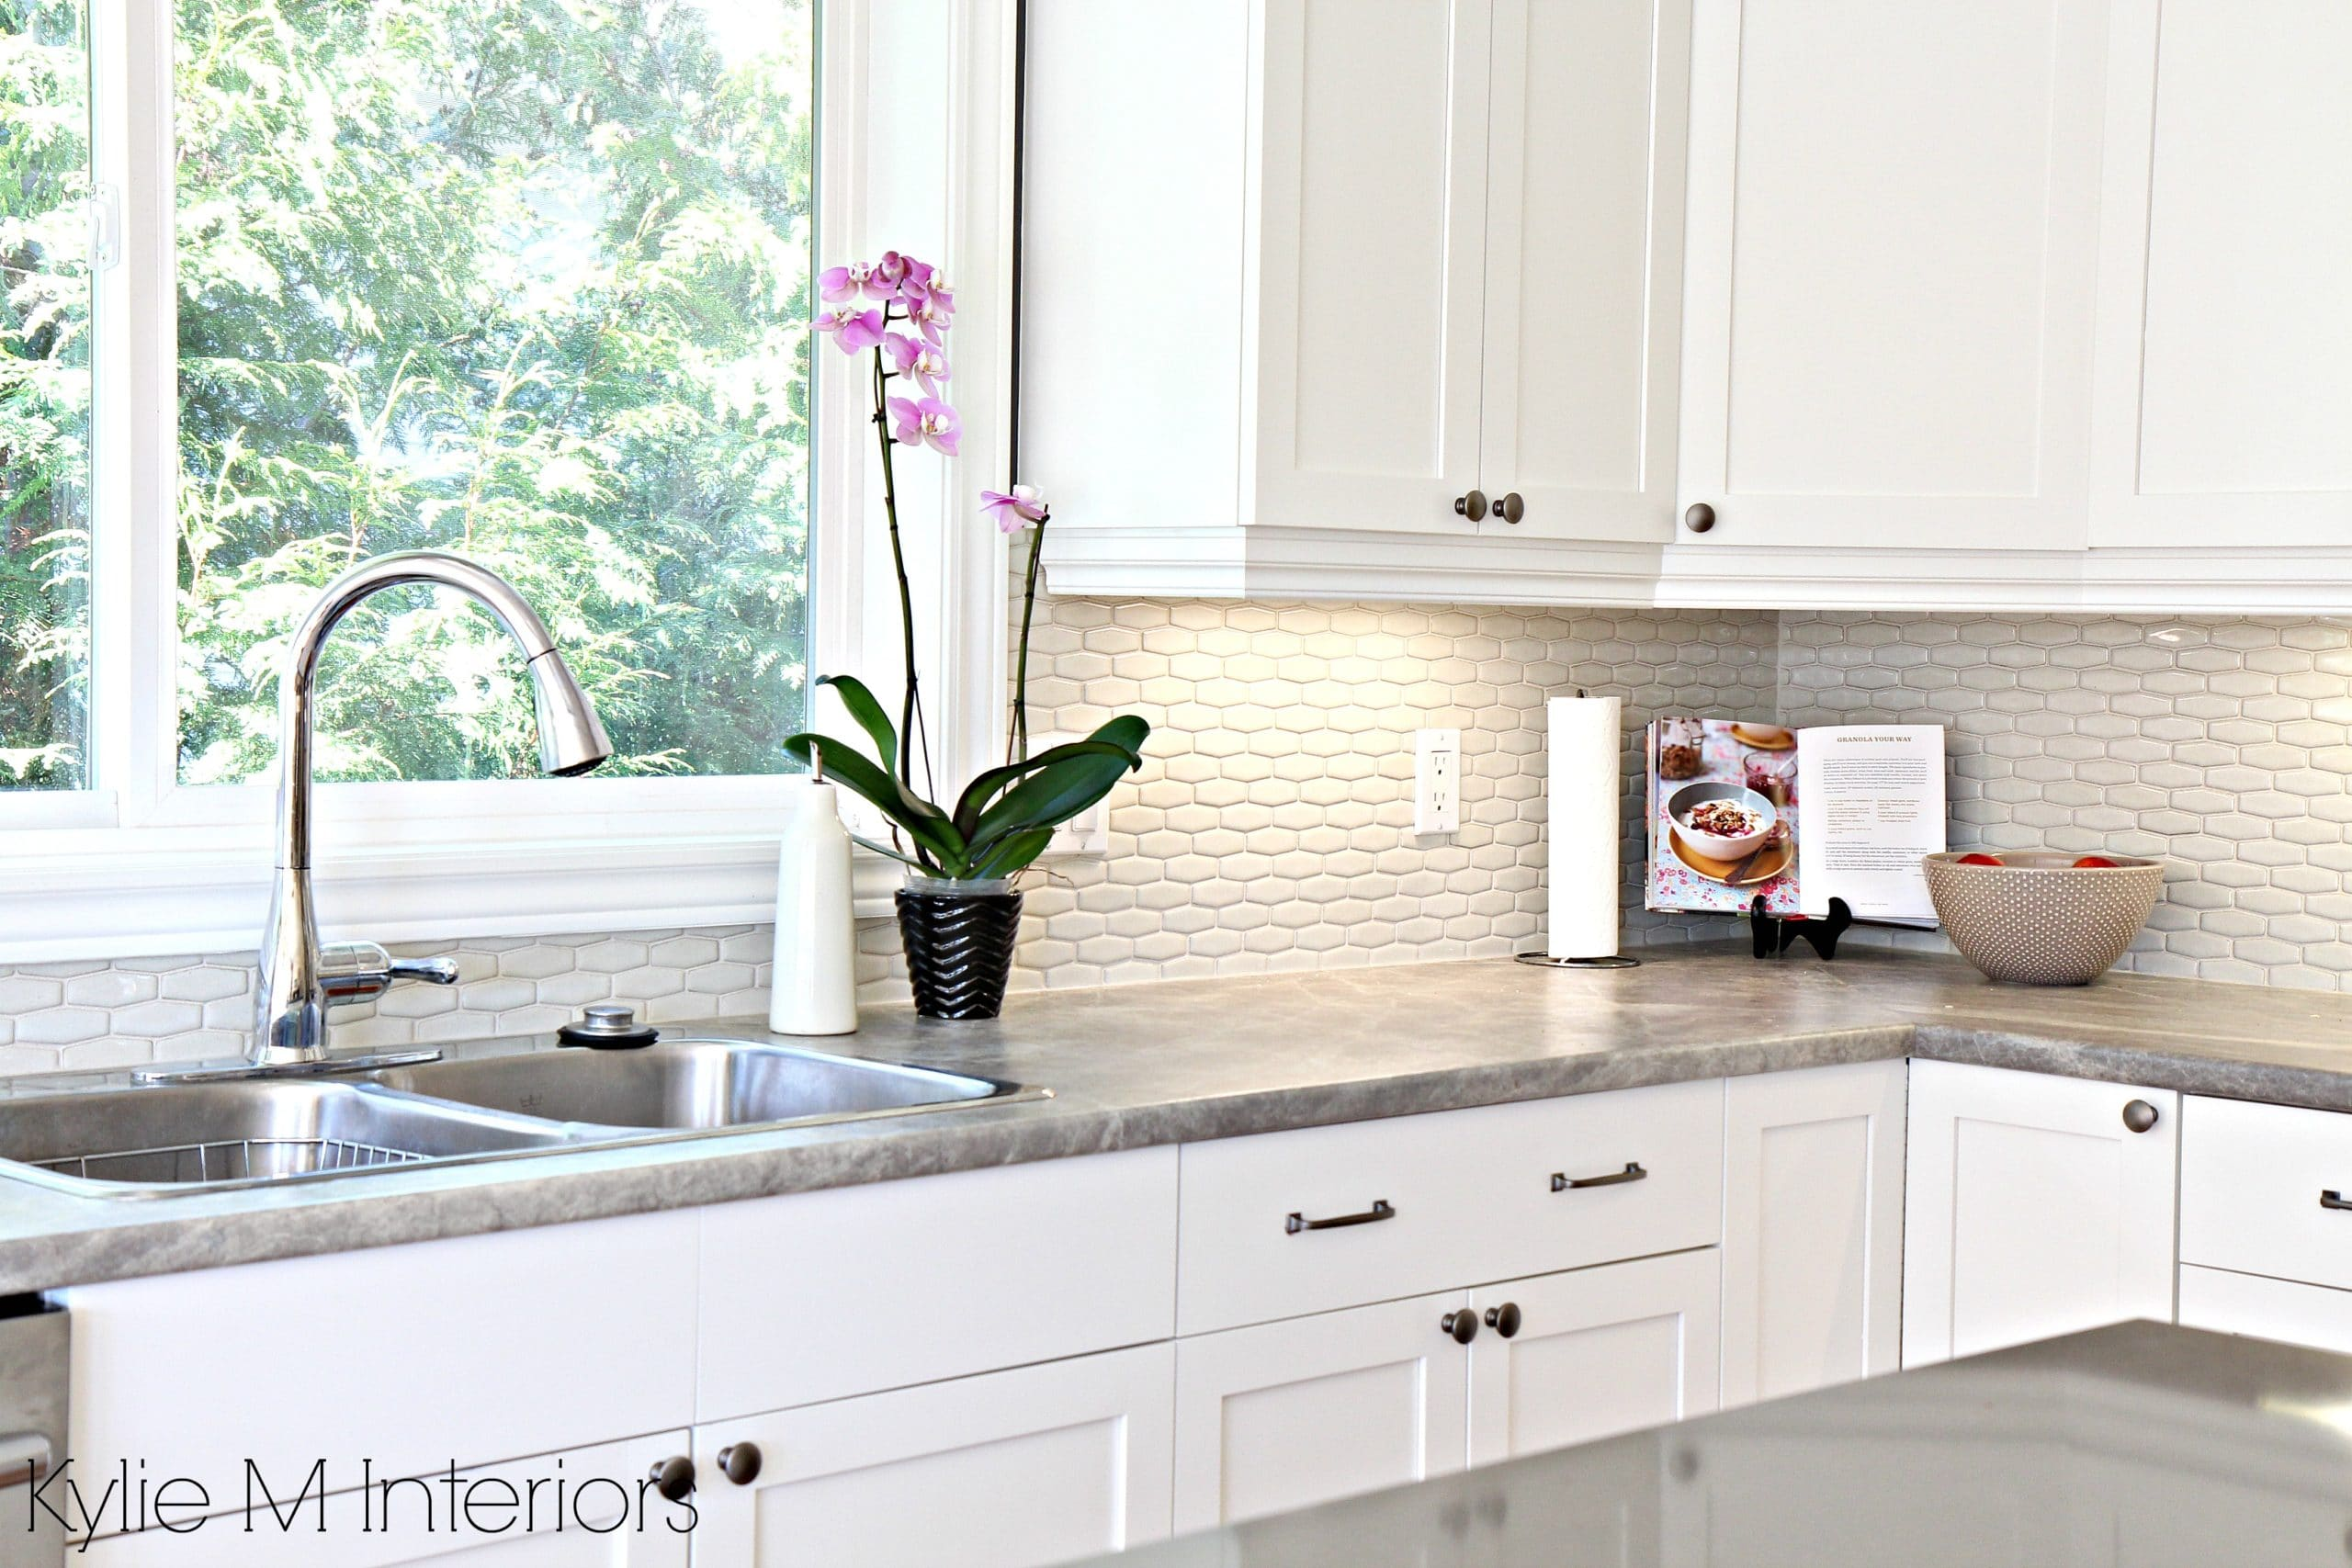 hexagon subway tile backsplash. Maple cabinets painted Cloud White ...